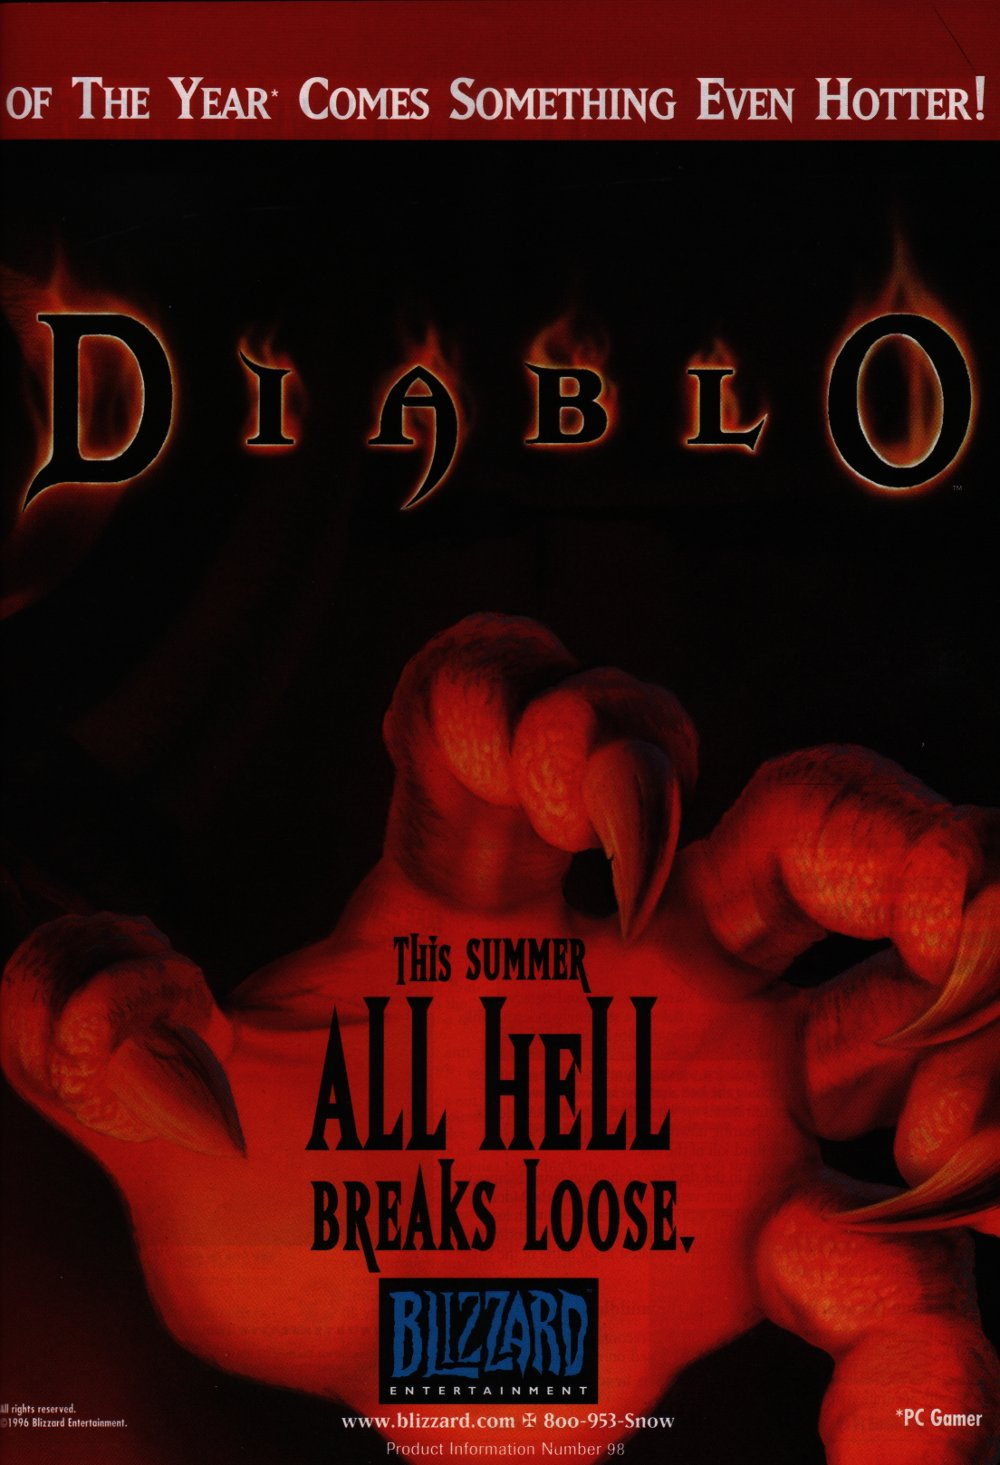 diablo-ad-june-1996.18325